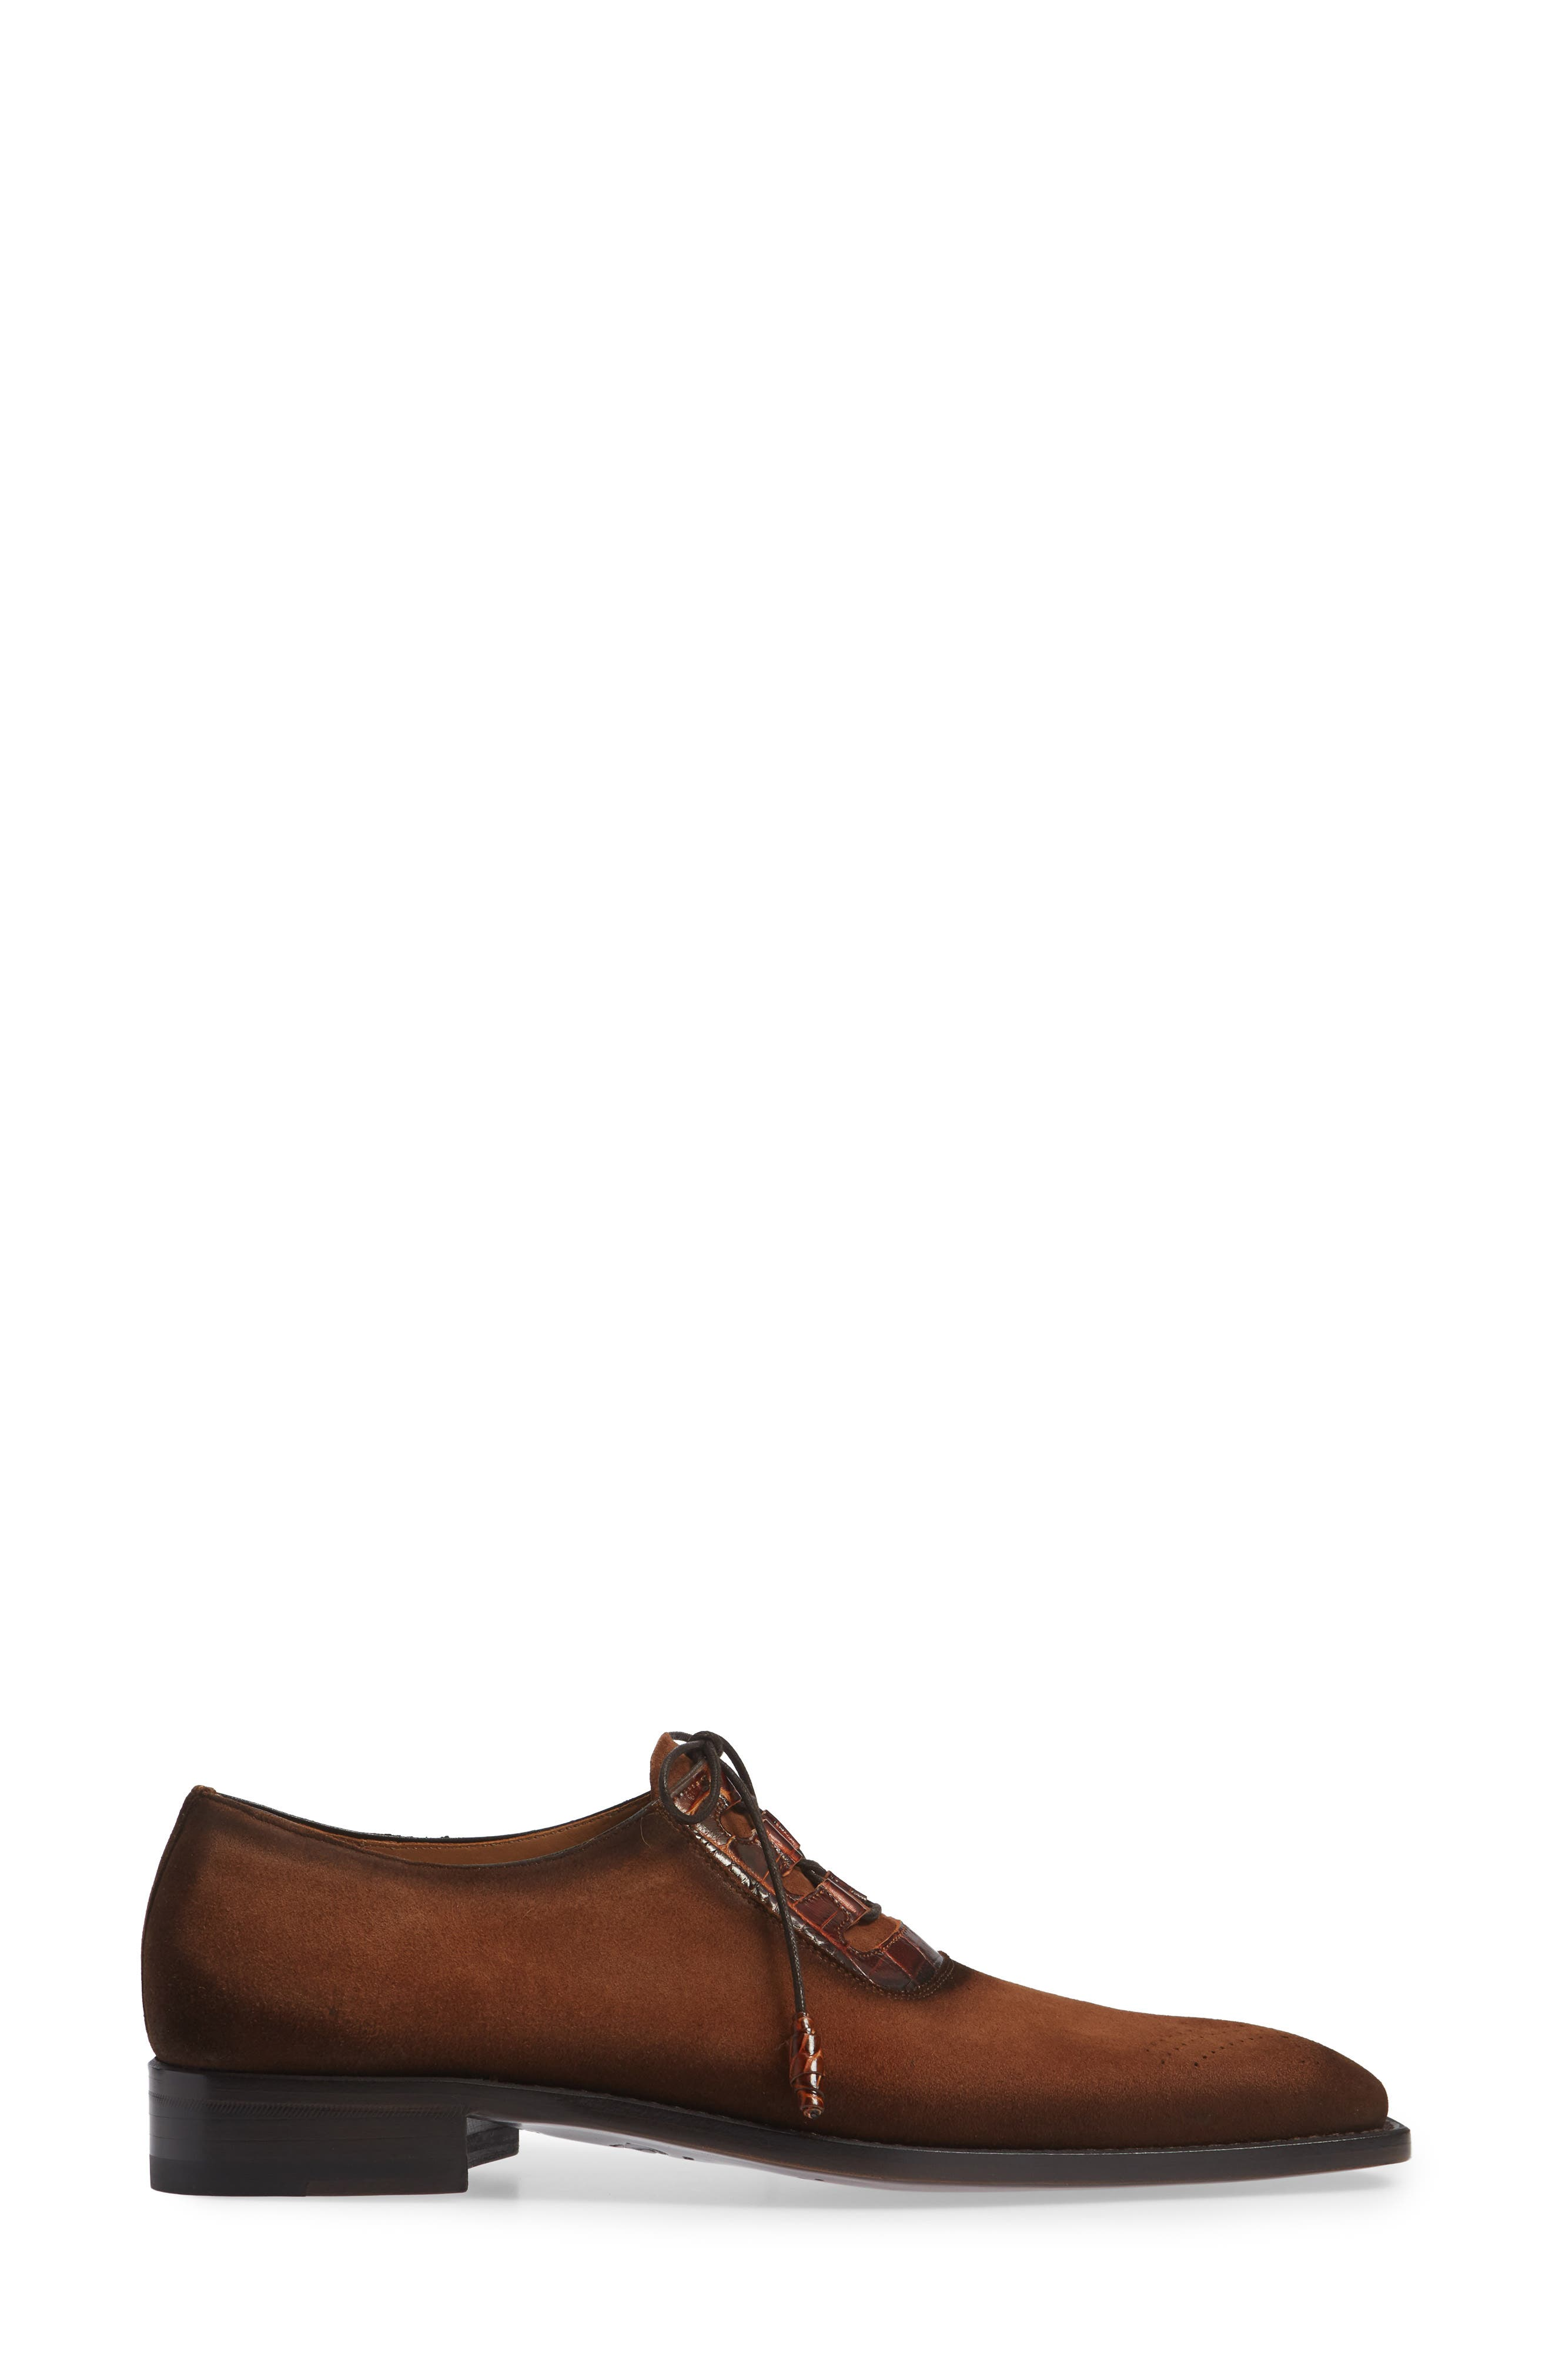 Cassel Oxford,                             Alternate thumbnail 3, color,                             COGNAC